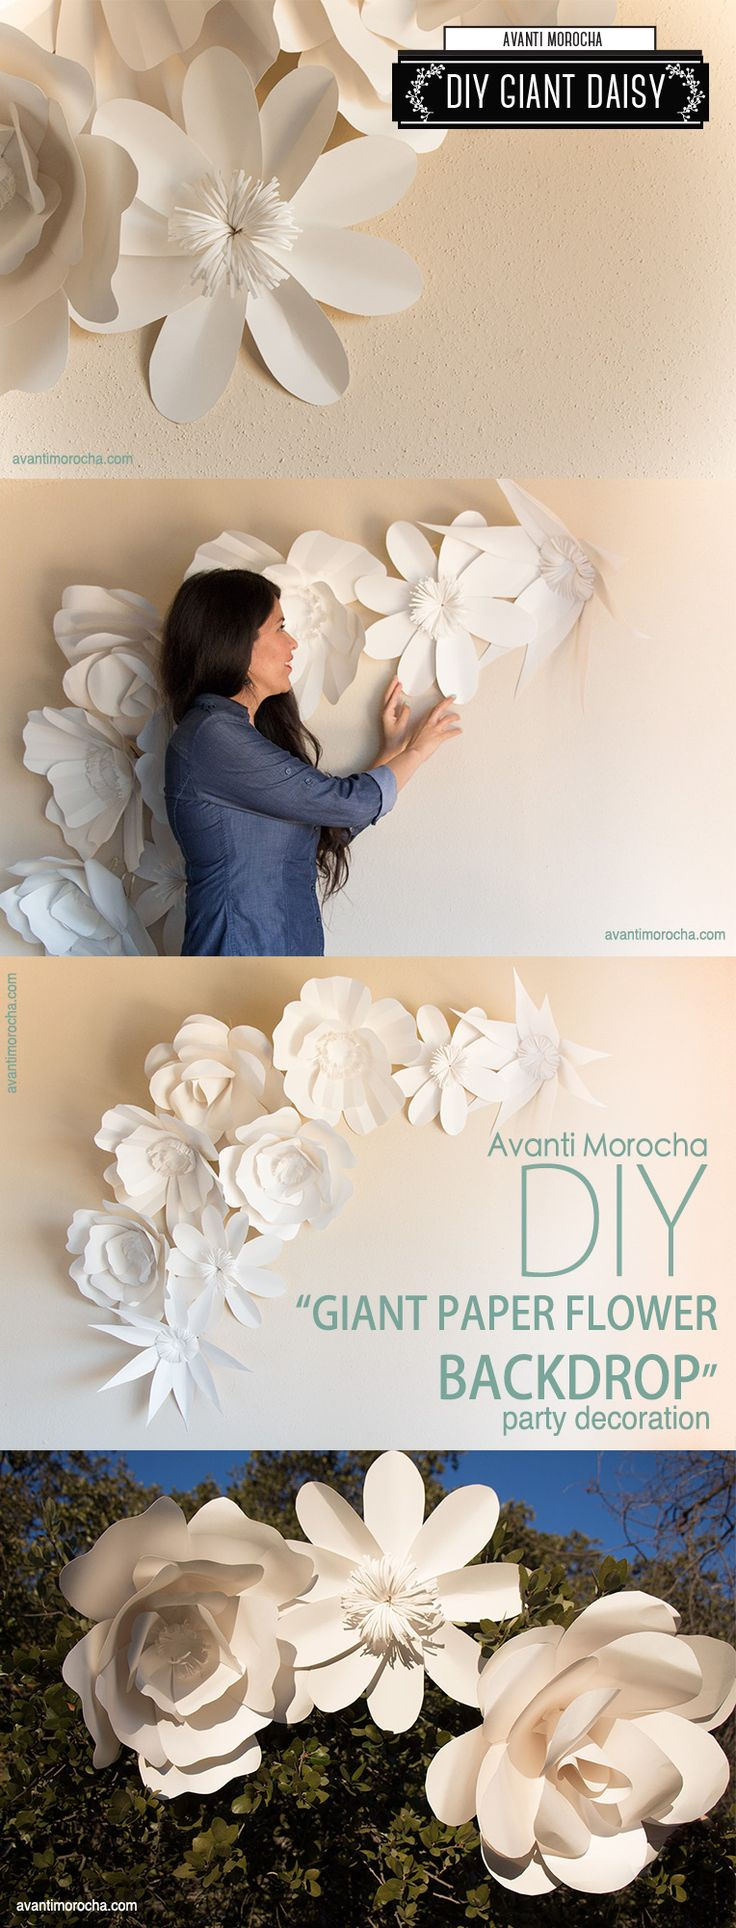 DIY Giant Paper Flower Backdrop #paperflowers